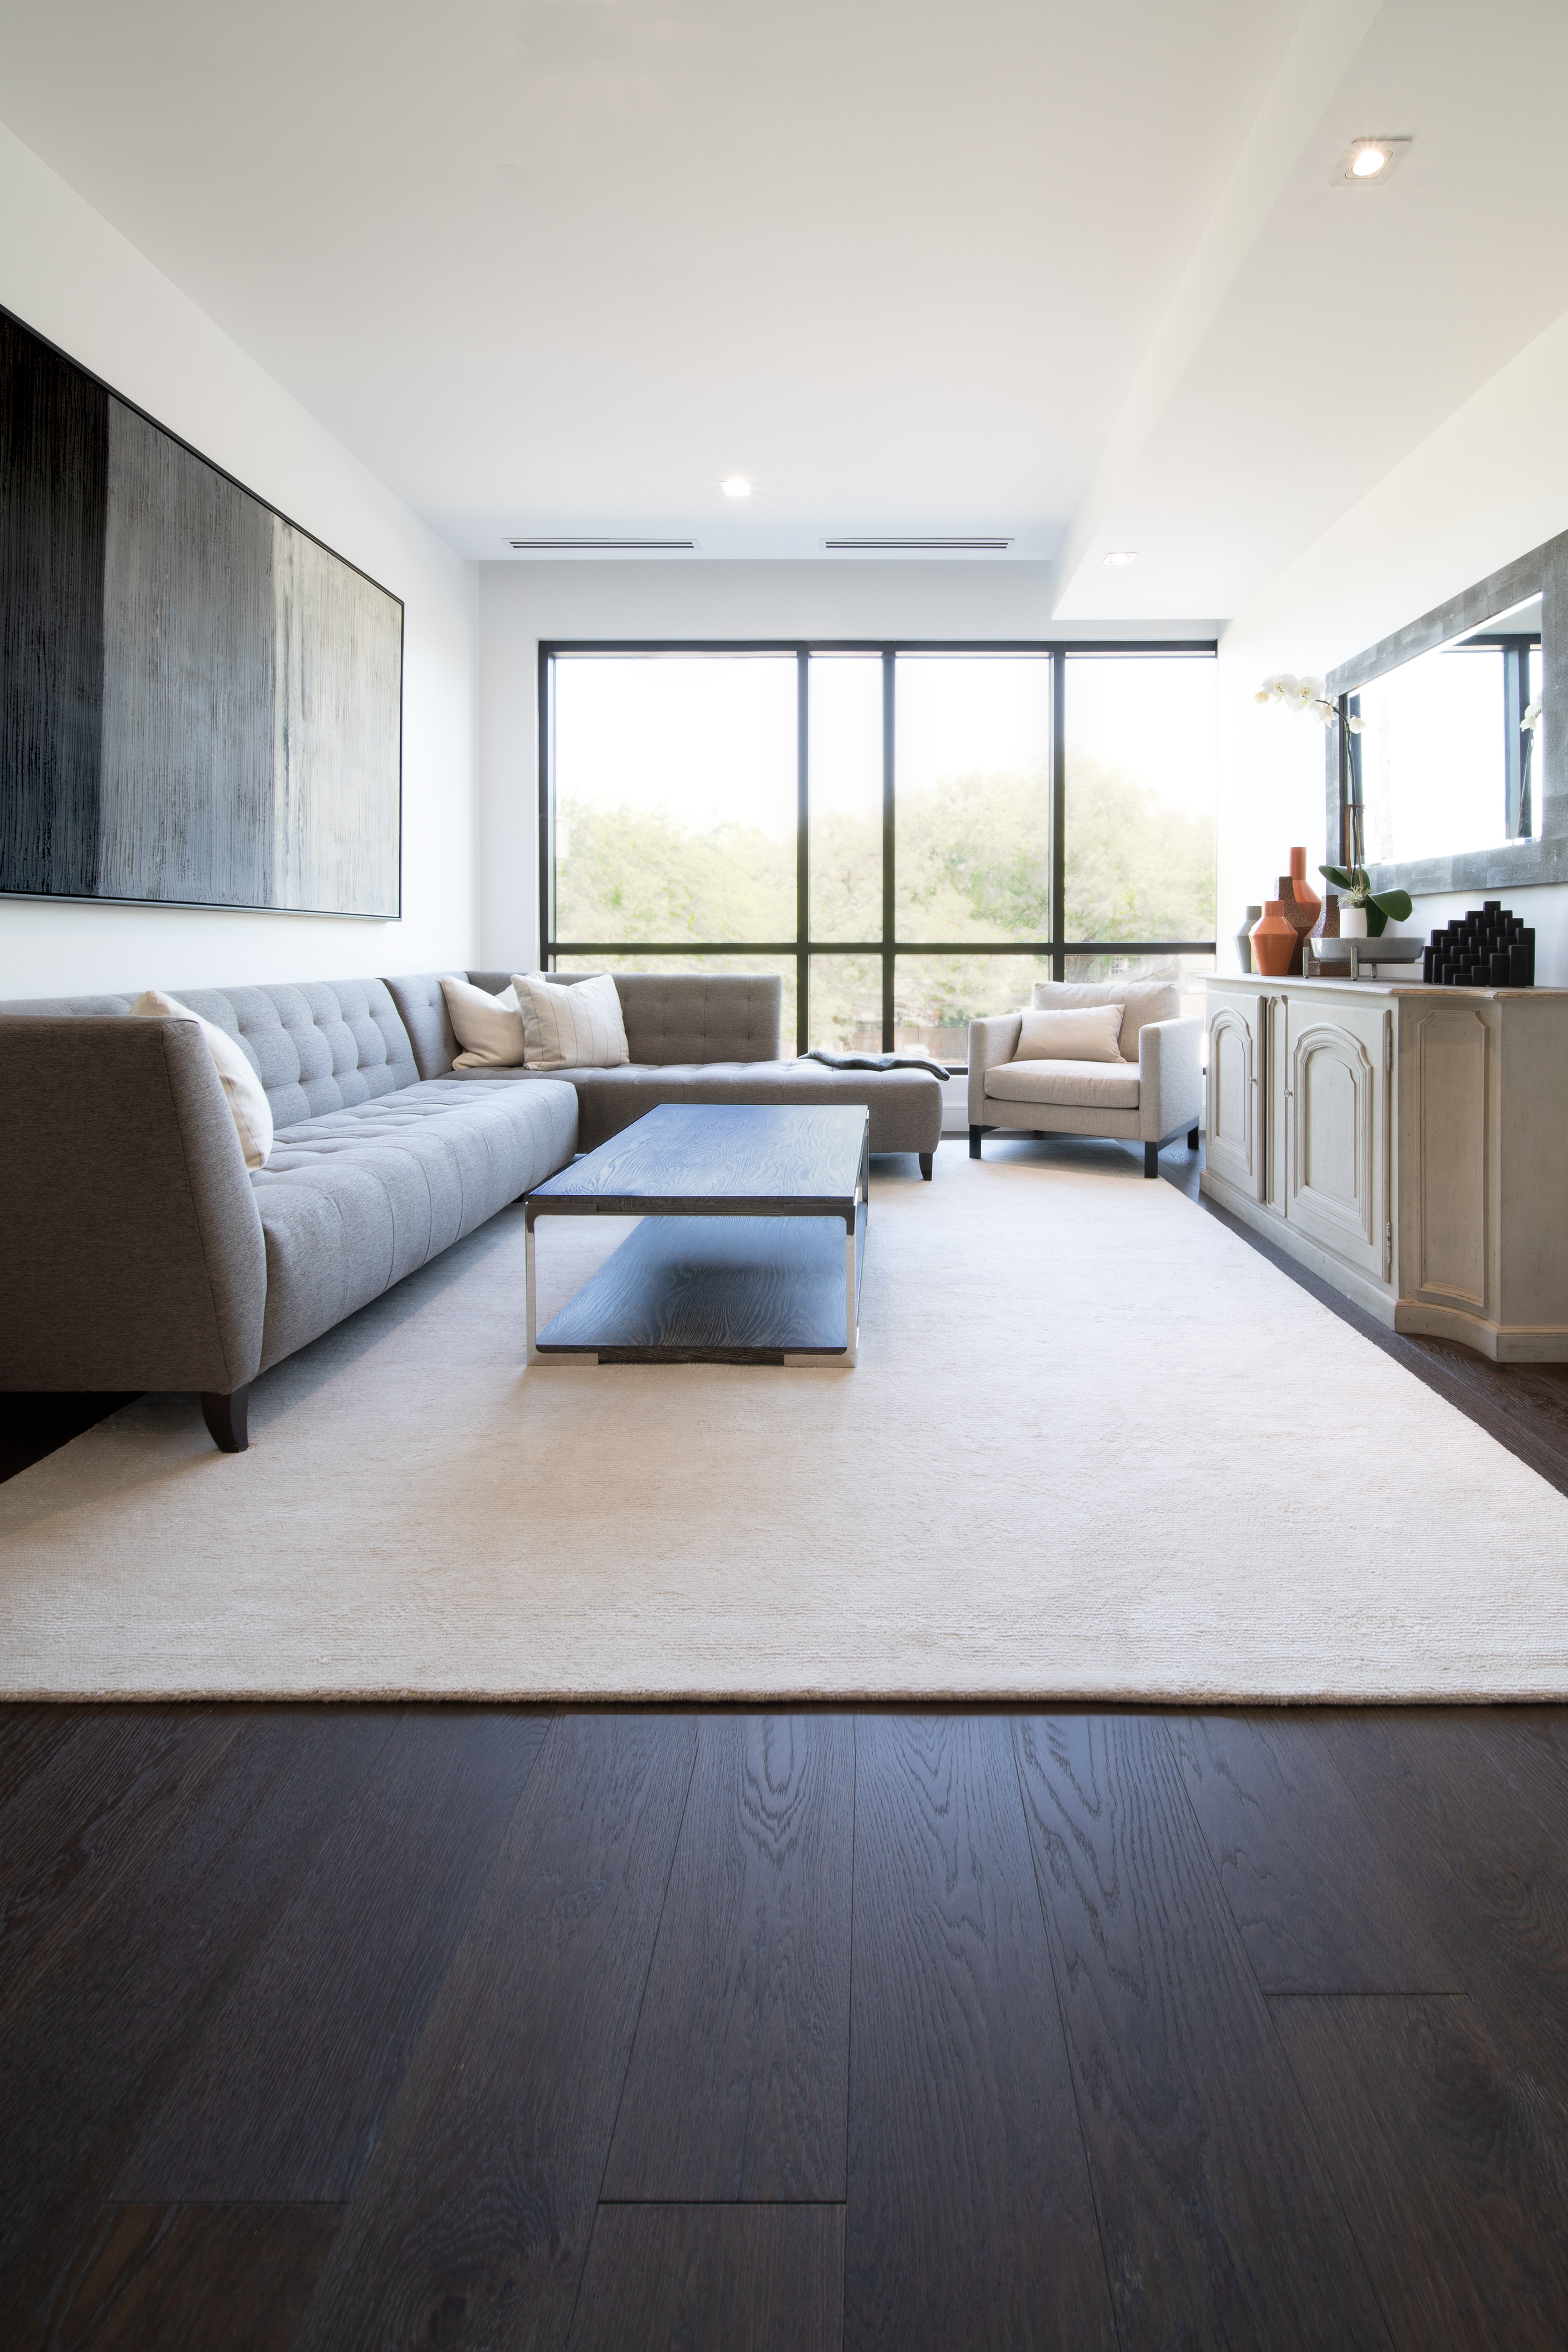 Regular House and Maid Cleaning Services in Montreal